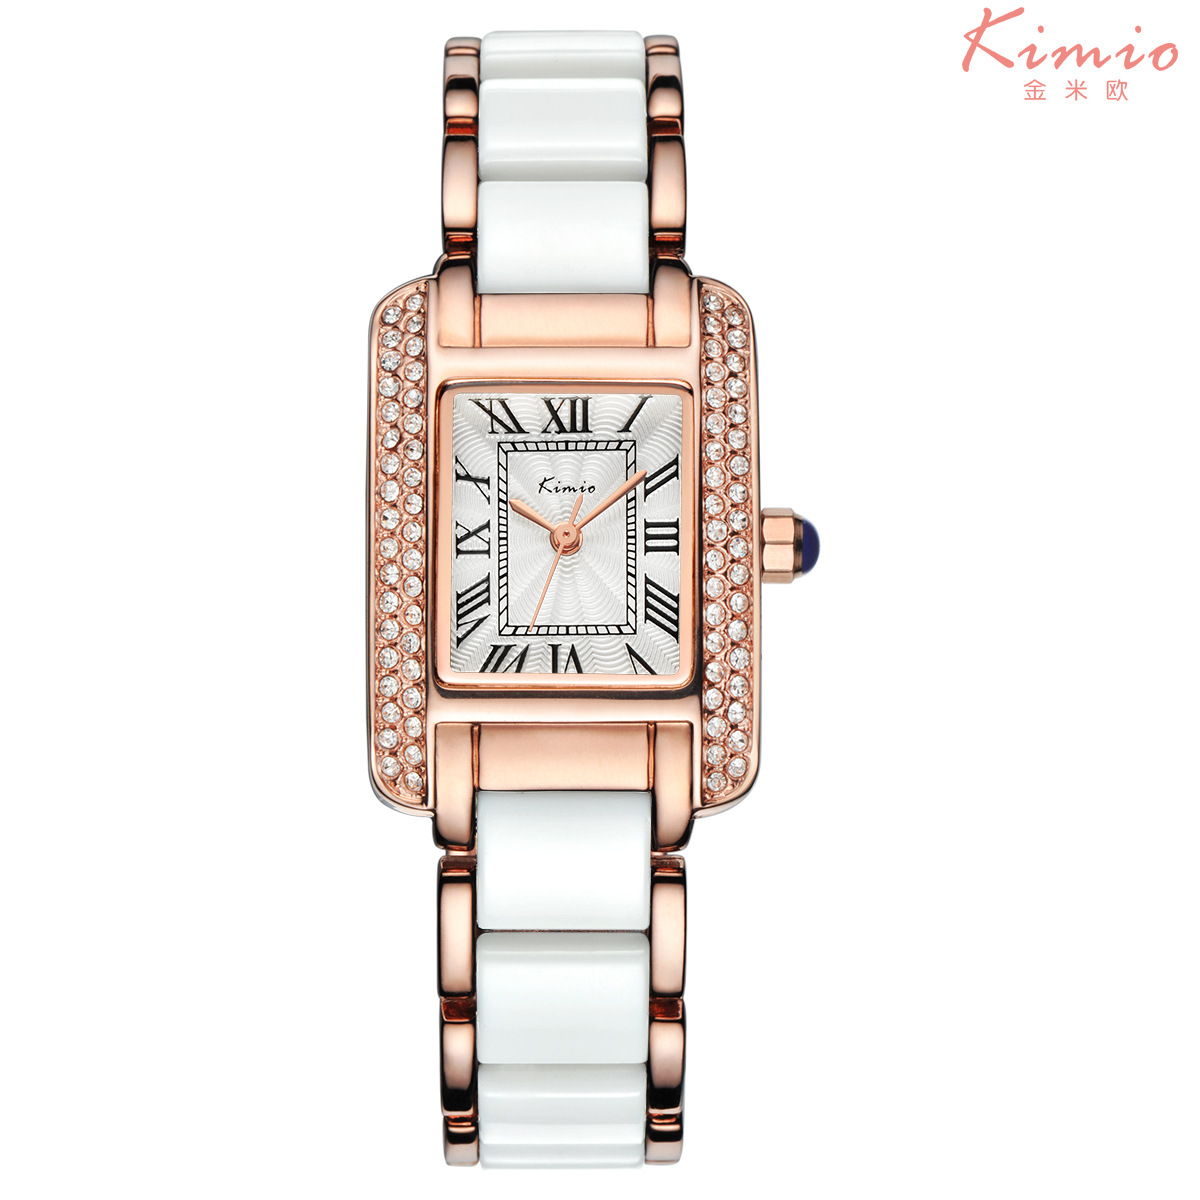 2017 womens Watches Top Brand Luxury Gold Watch Male Fashion Wrist Watch unique brief watches